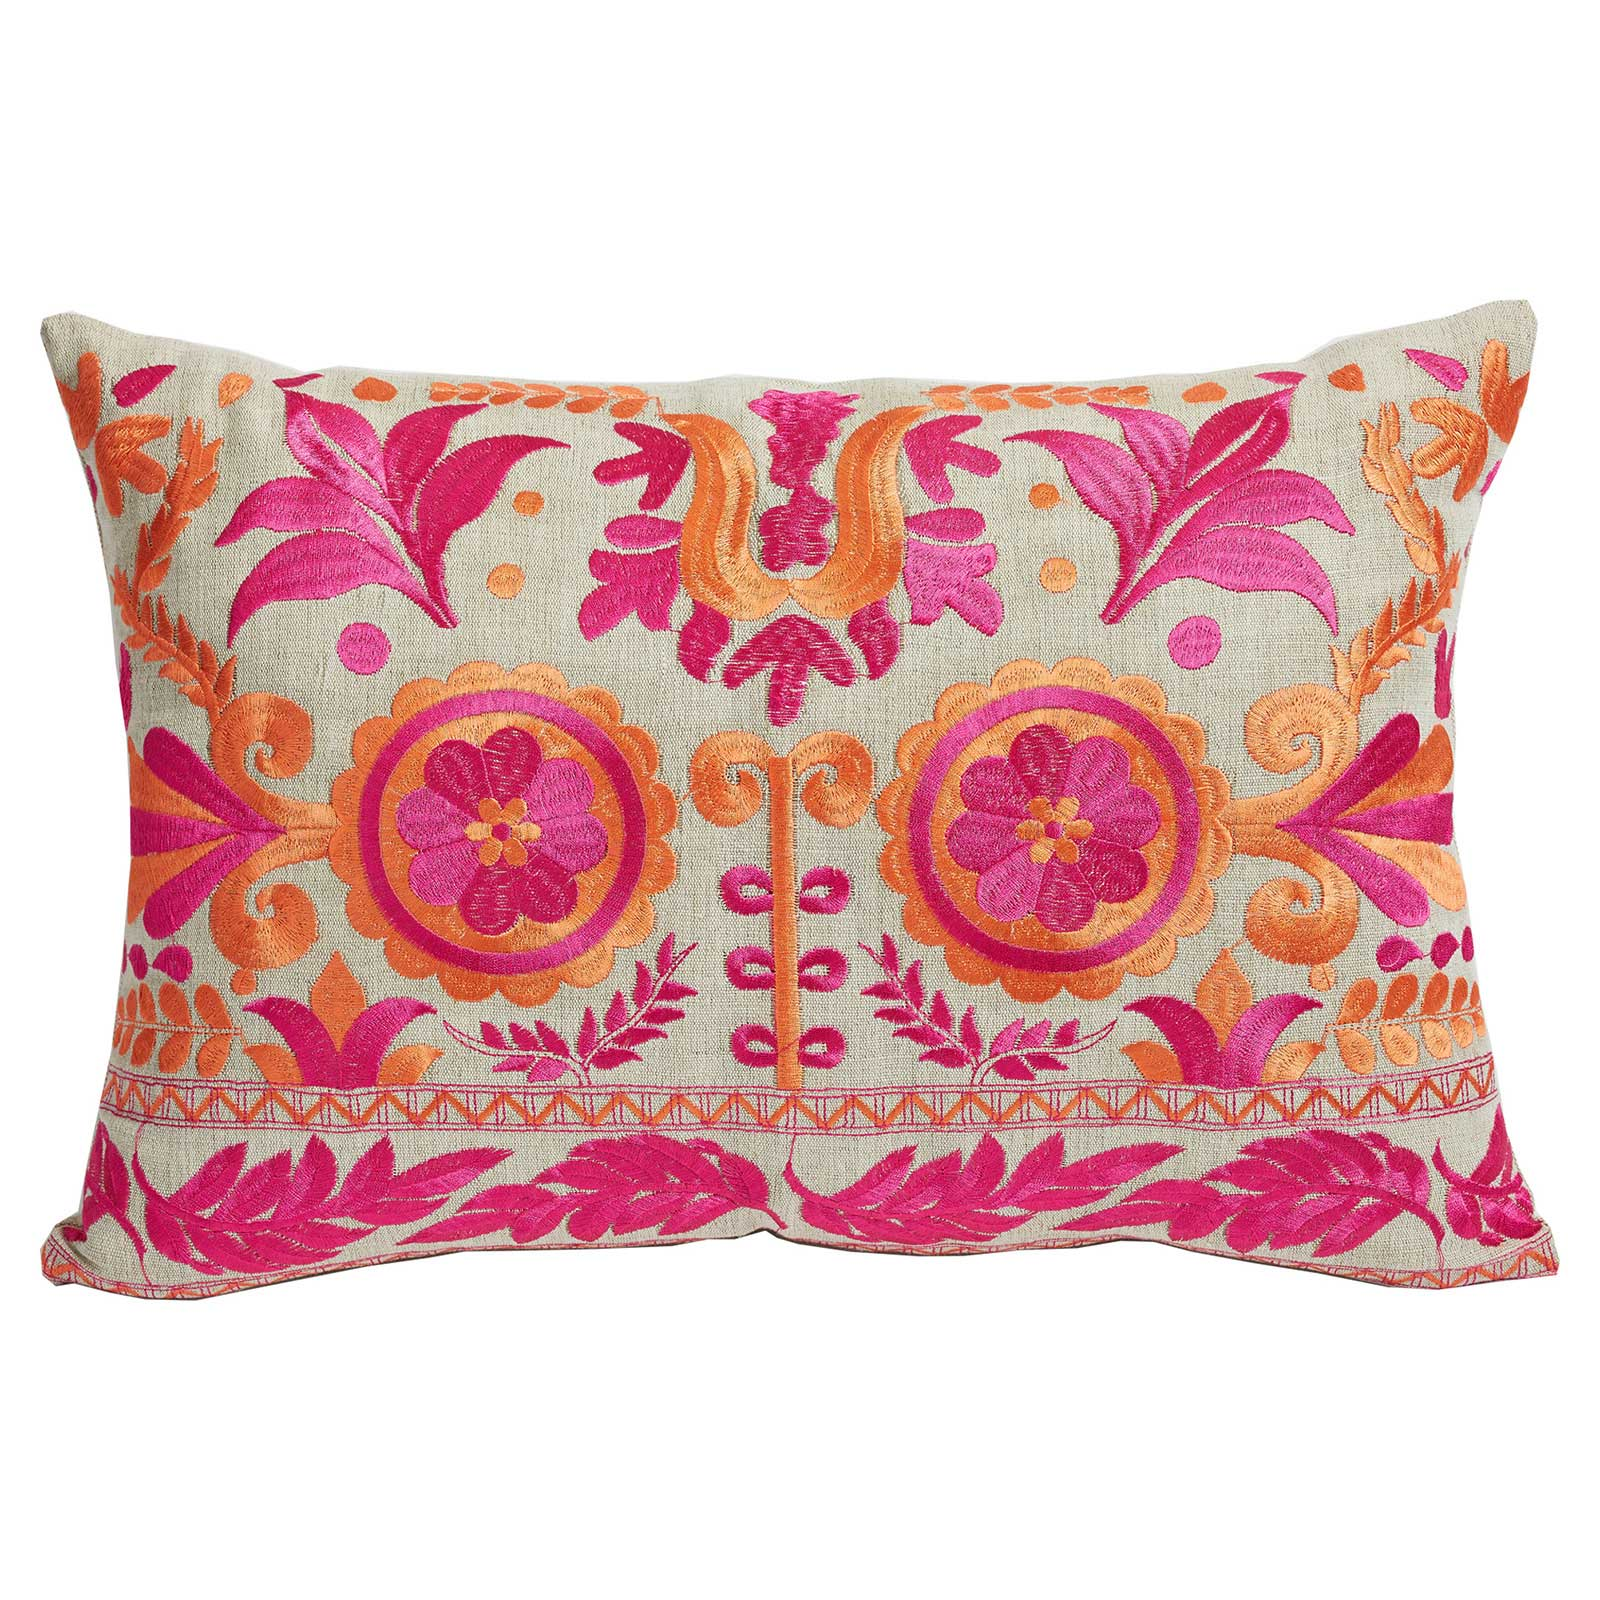 Costa Global Bazaar Pink Floral Embroidered Pillow - 13x19